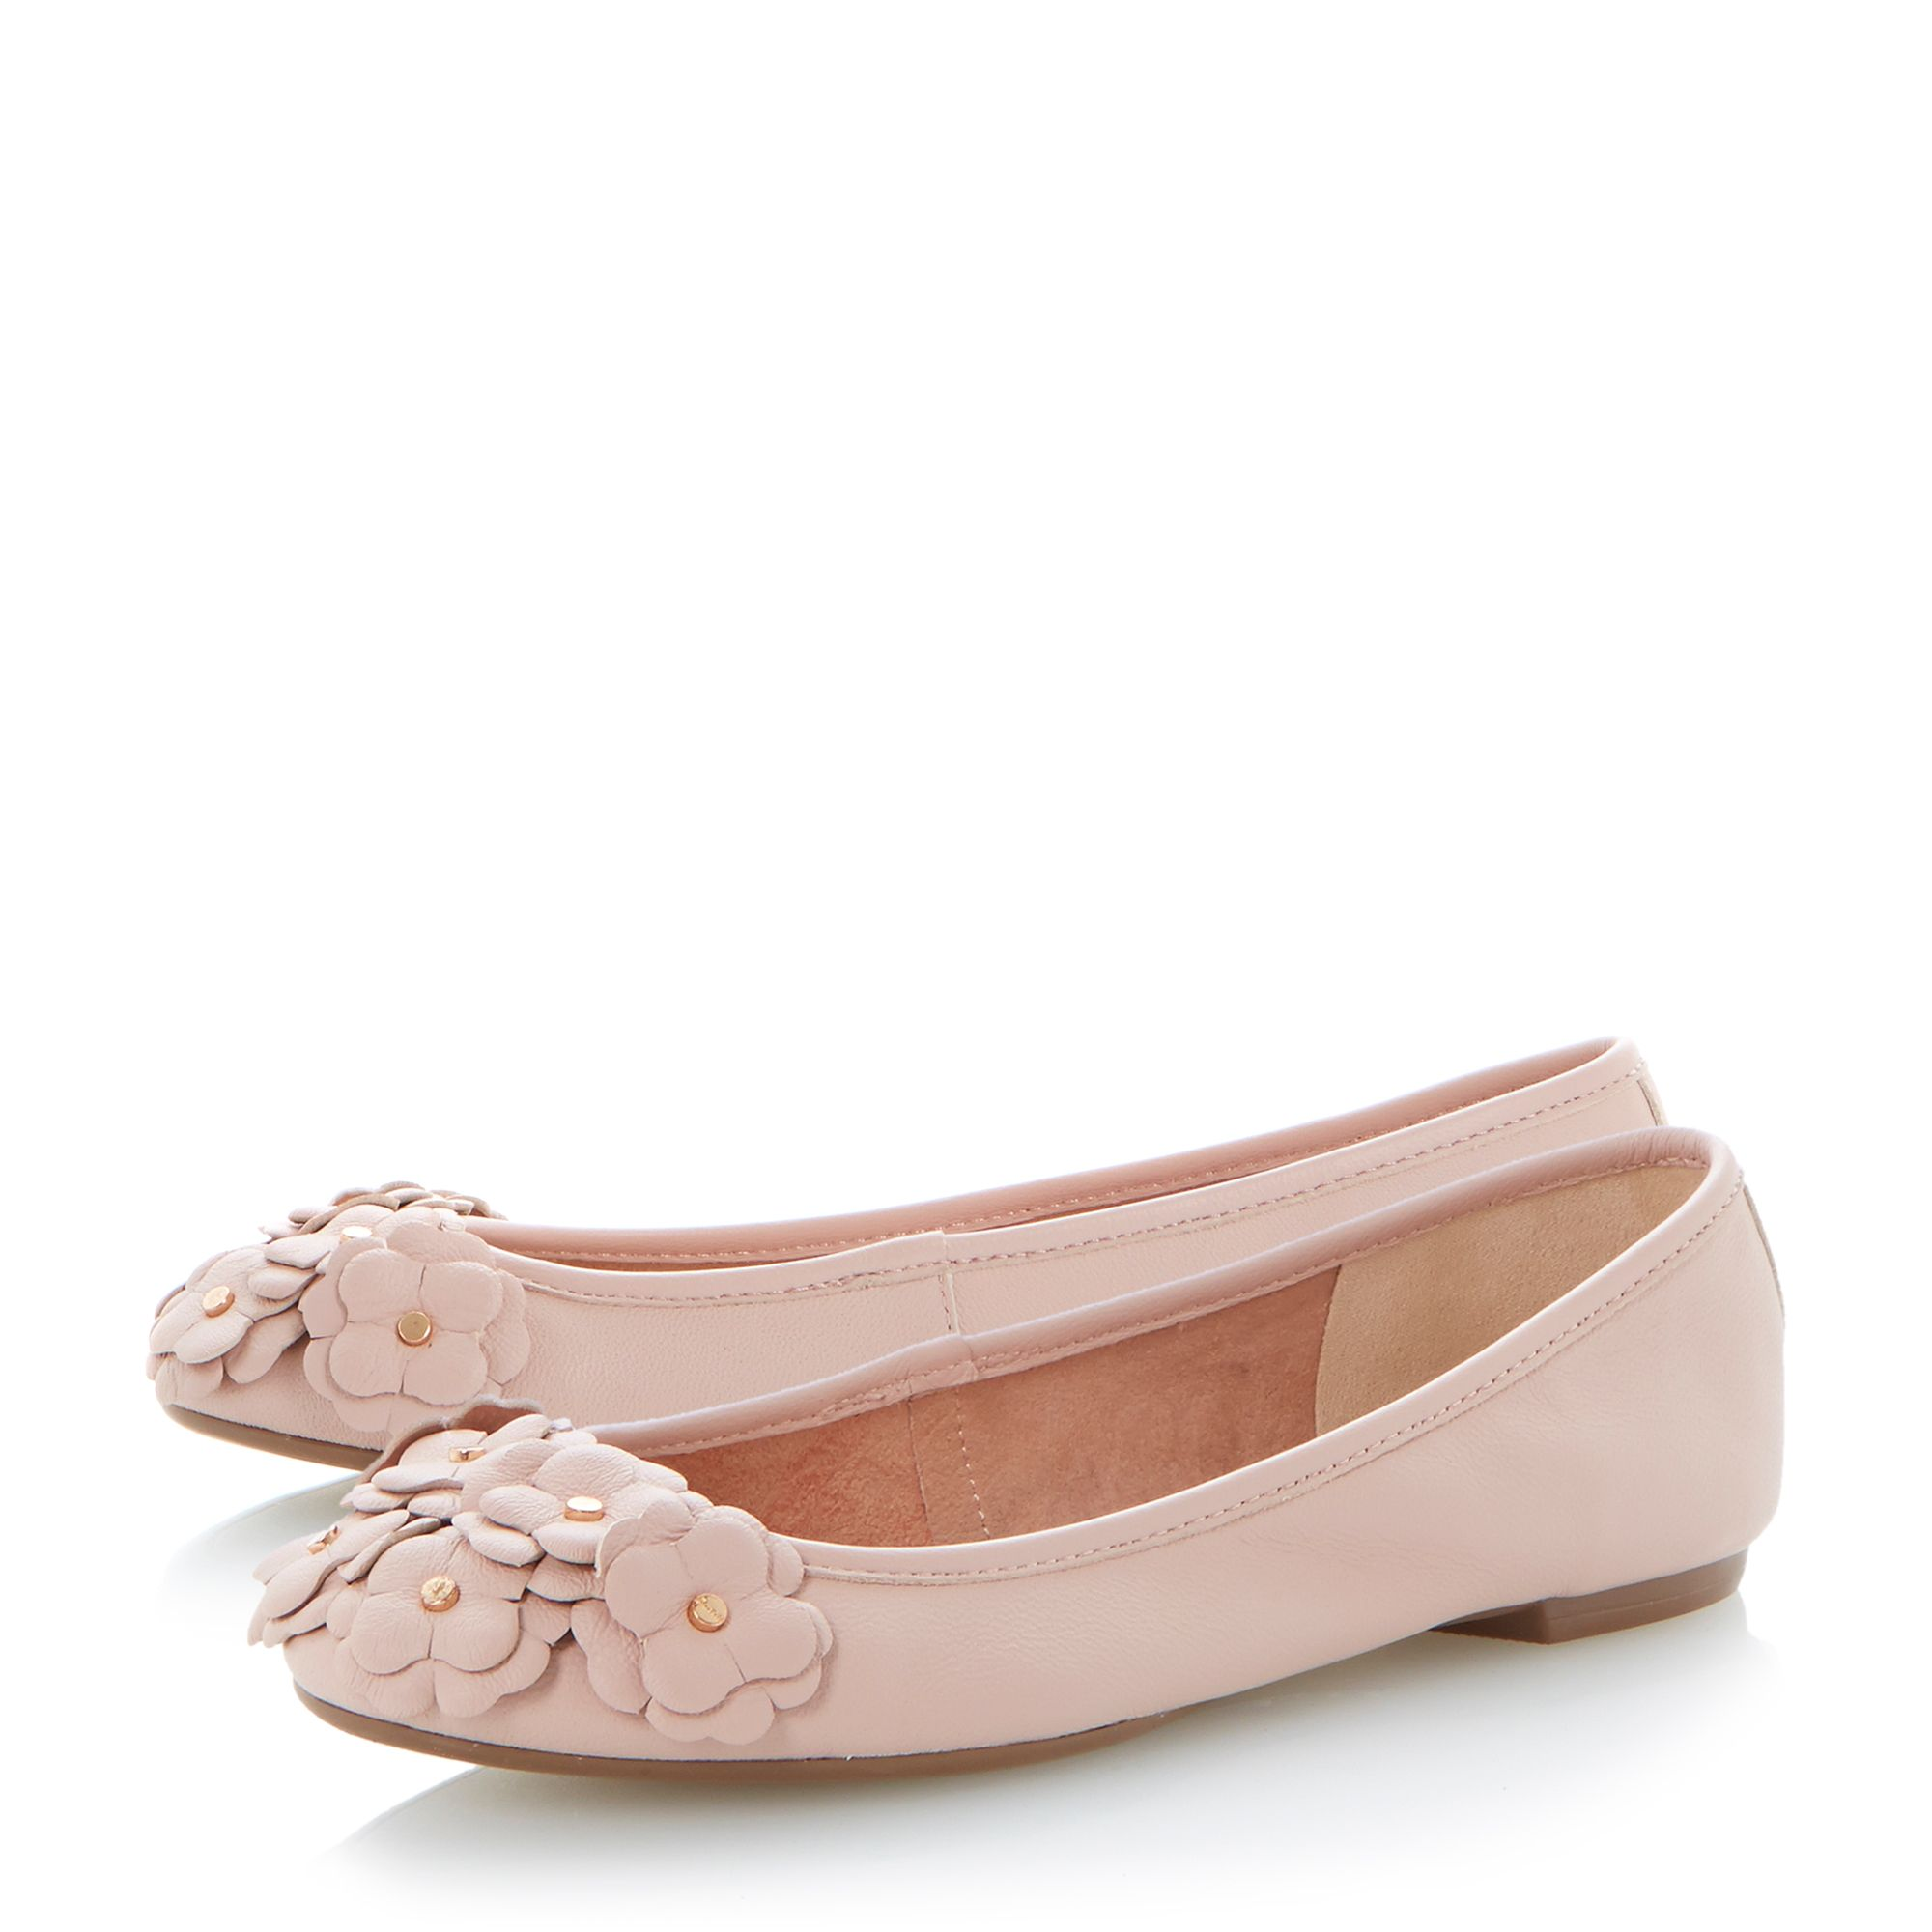 Milberry leather flower corsage ballerina shoes